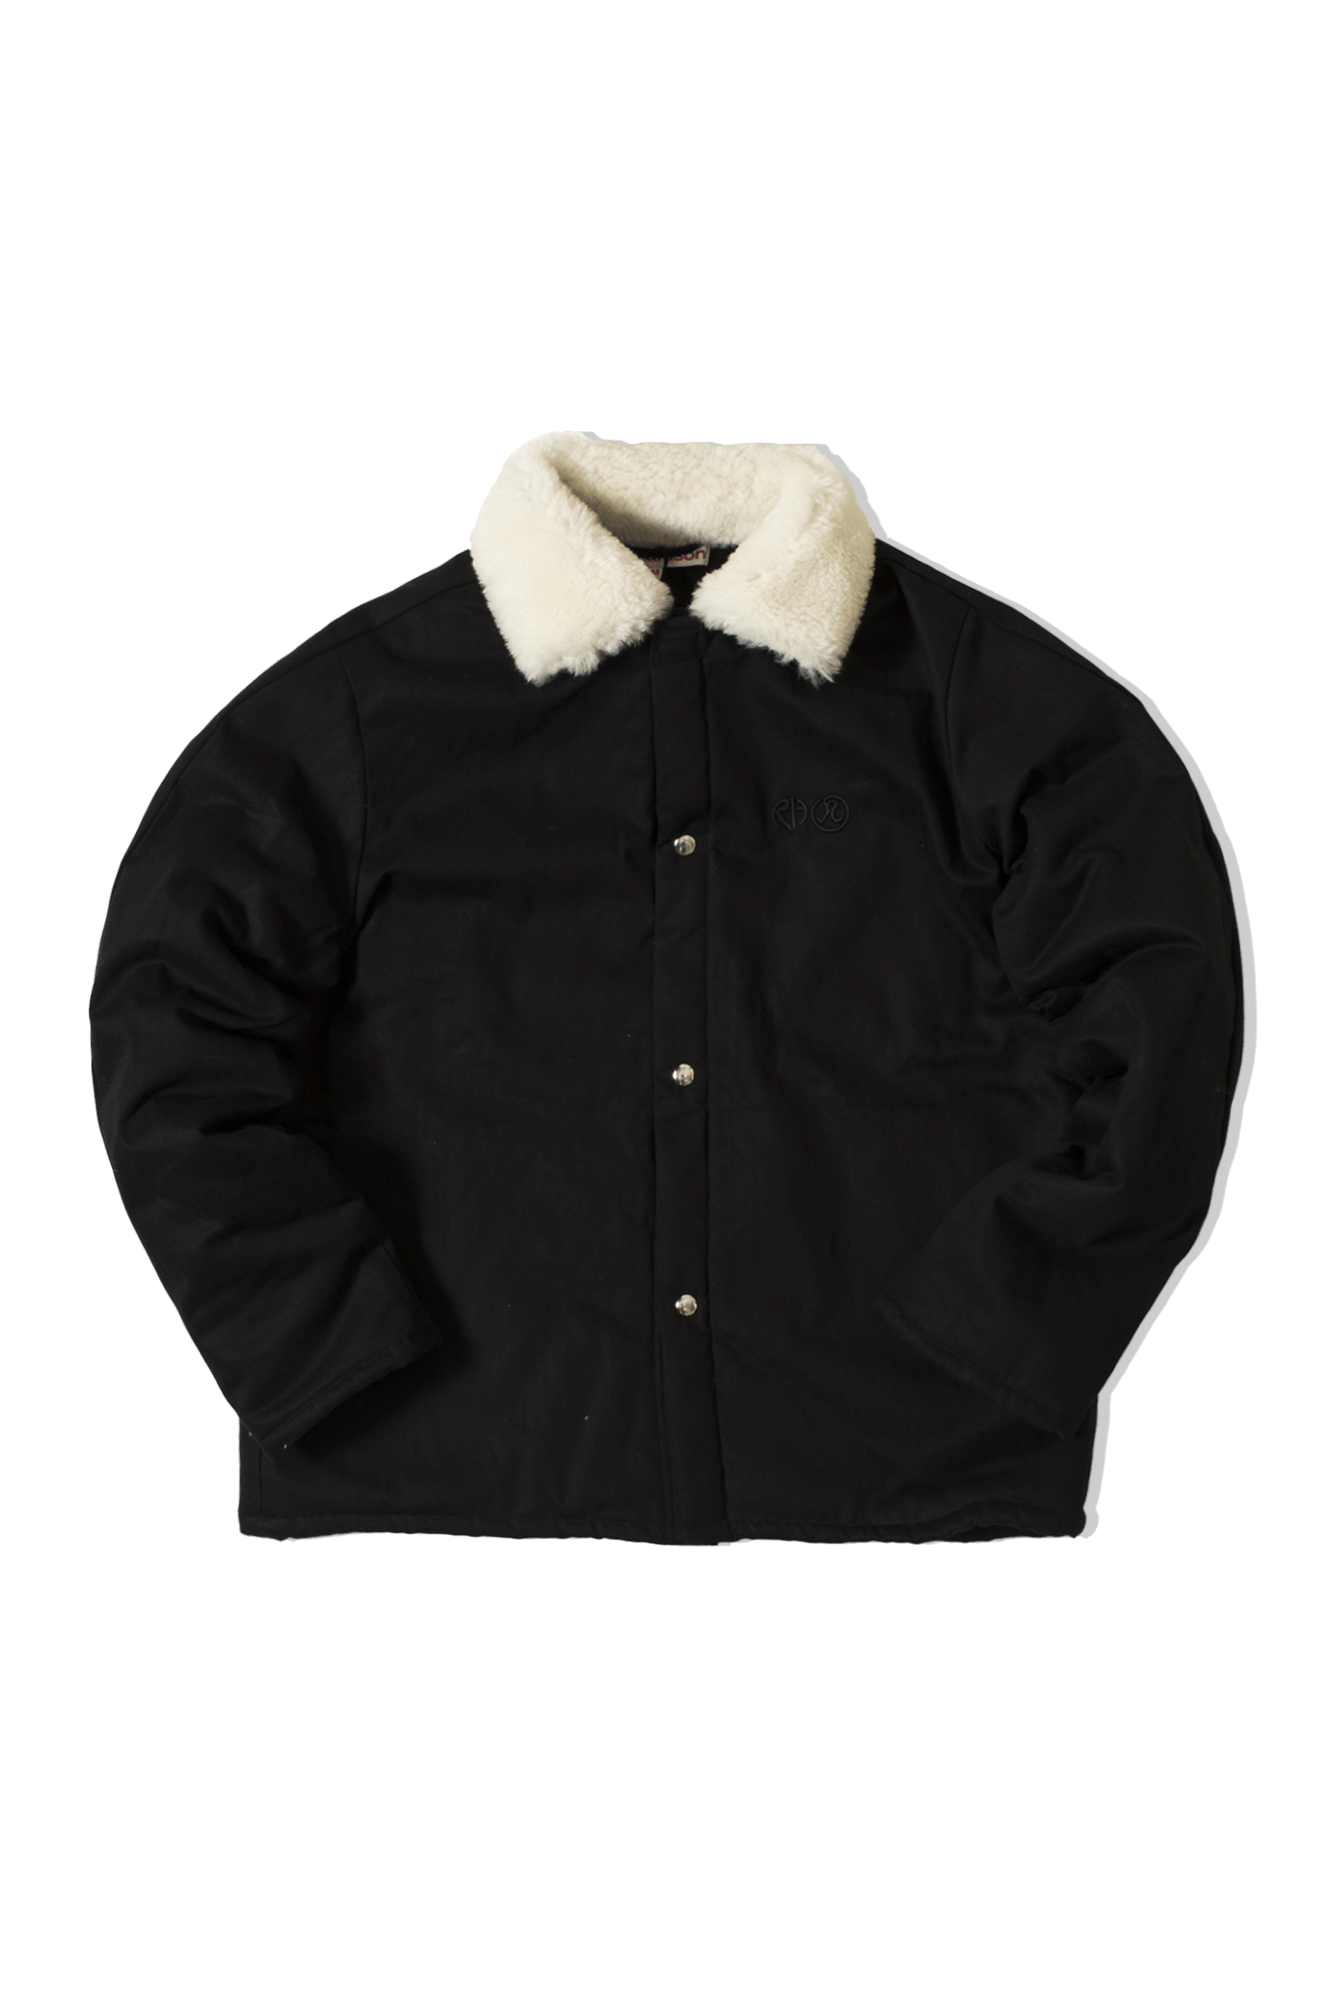 Sherpa Welder's Jacket Black